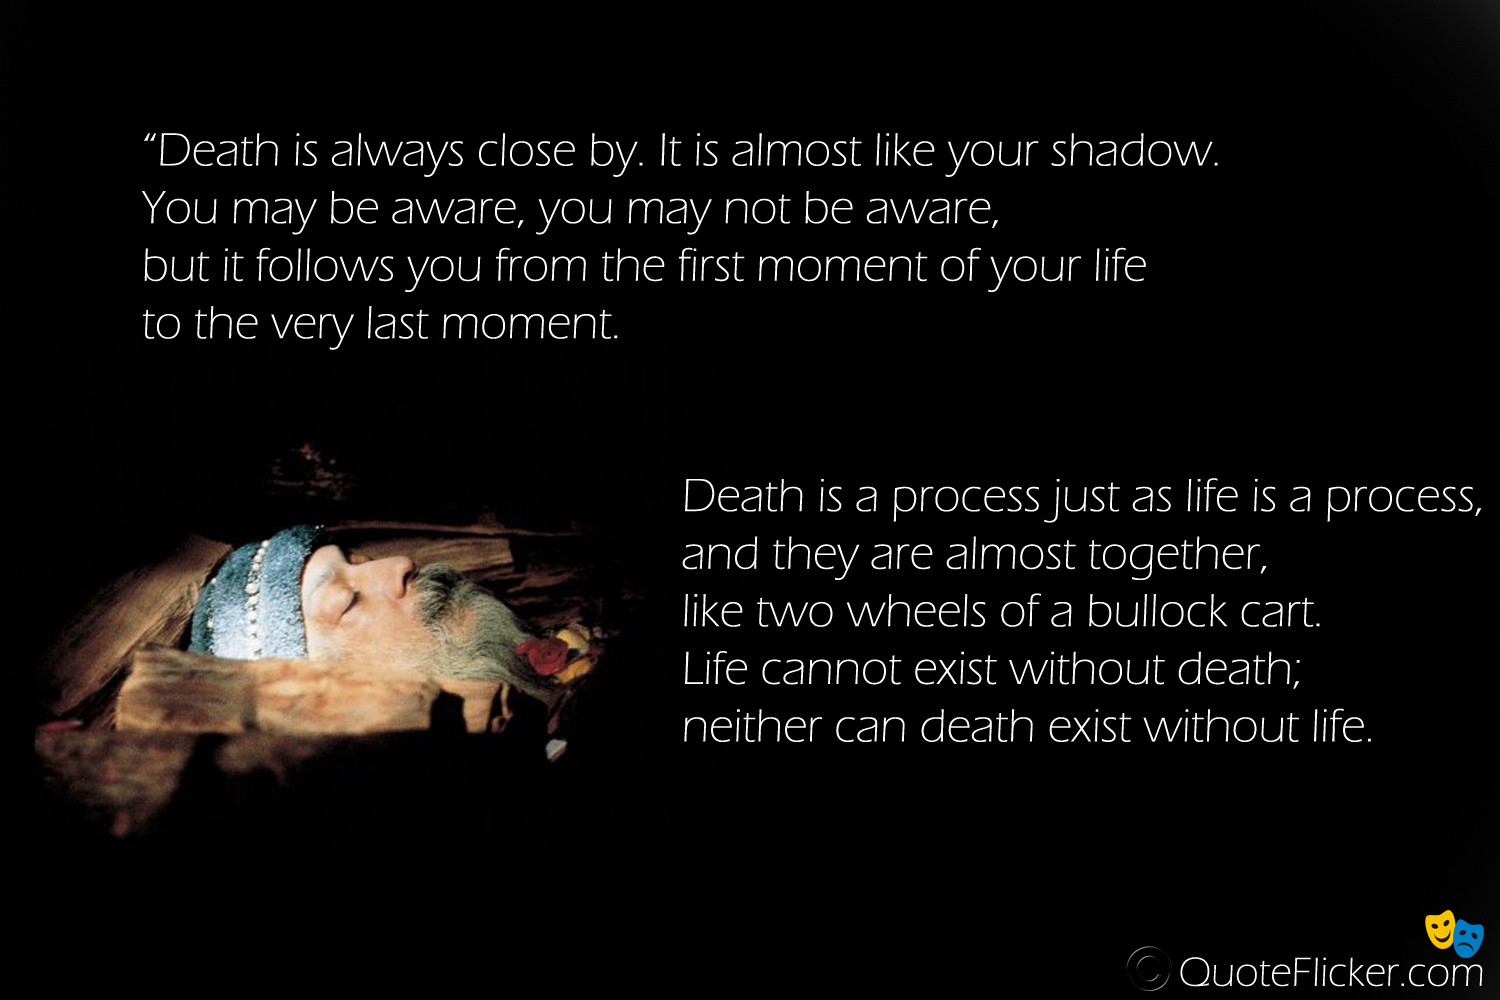 Quotes On Death Death Is A Process Quotes Collection